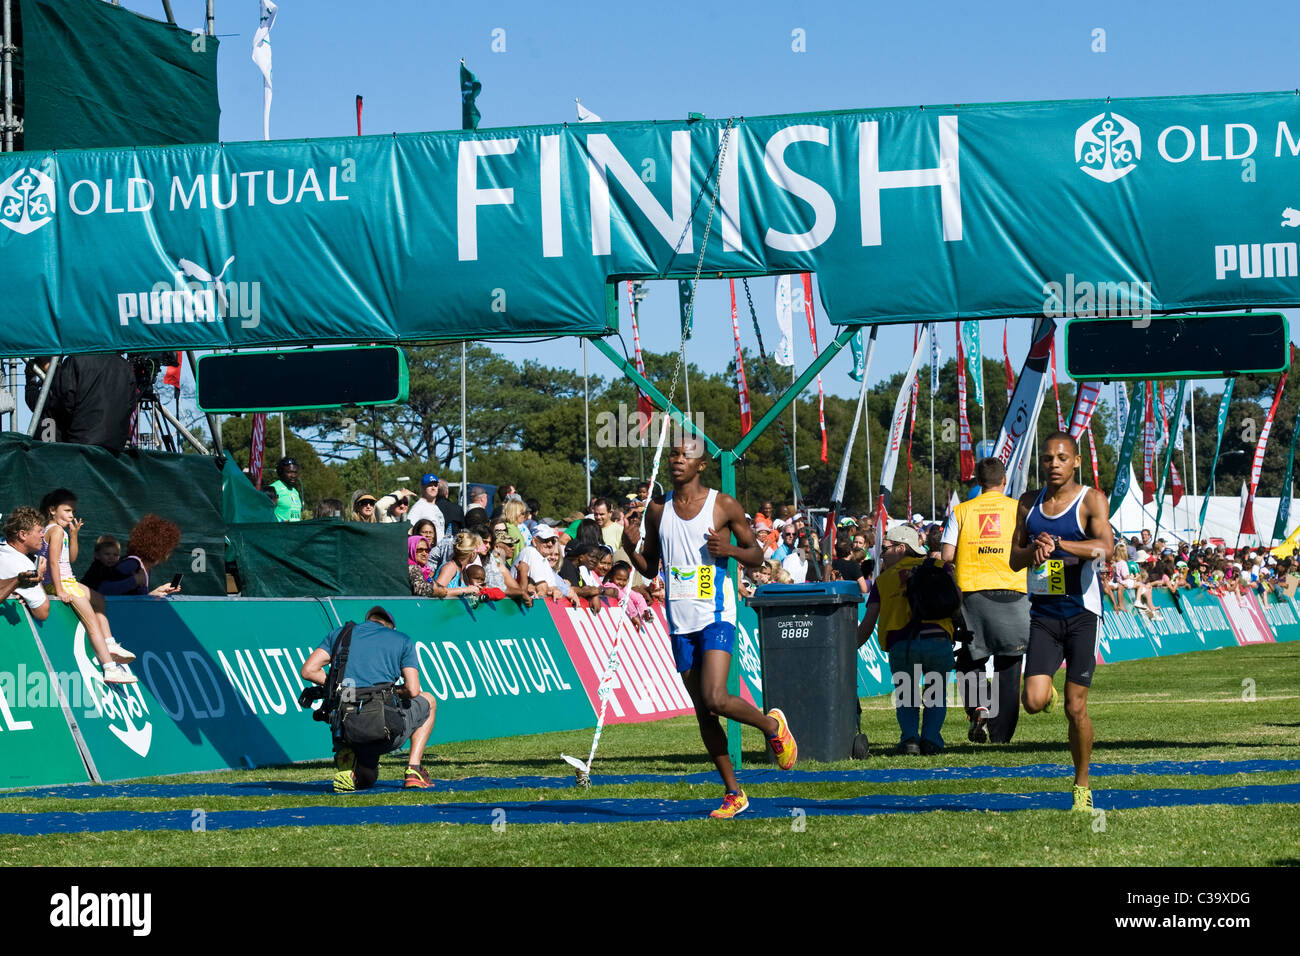 Runners crossing the finish of the 5km Fun Run, Two Oceans Marathon, Cape Town, South Africa - Stock Image